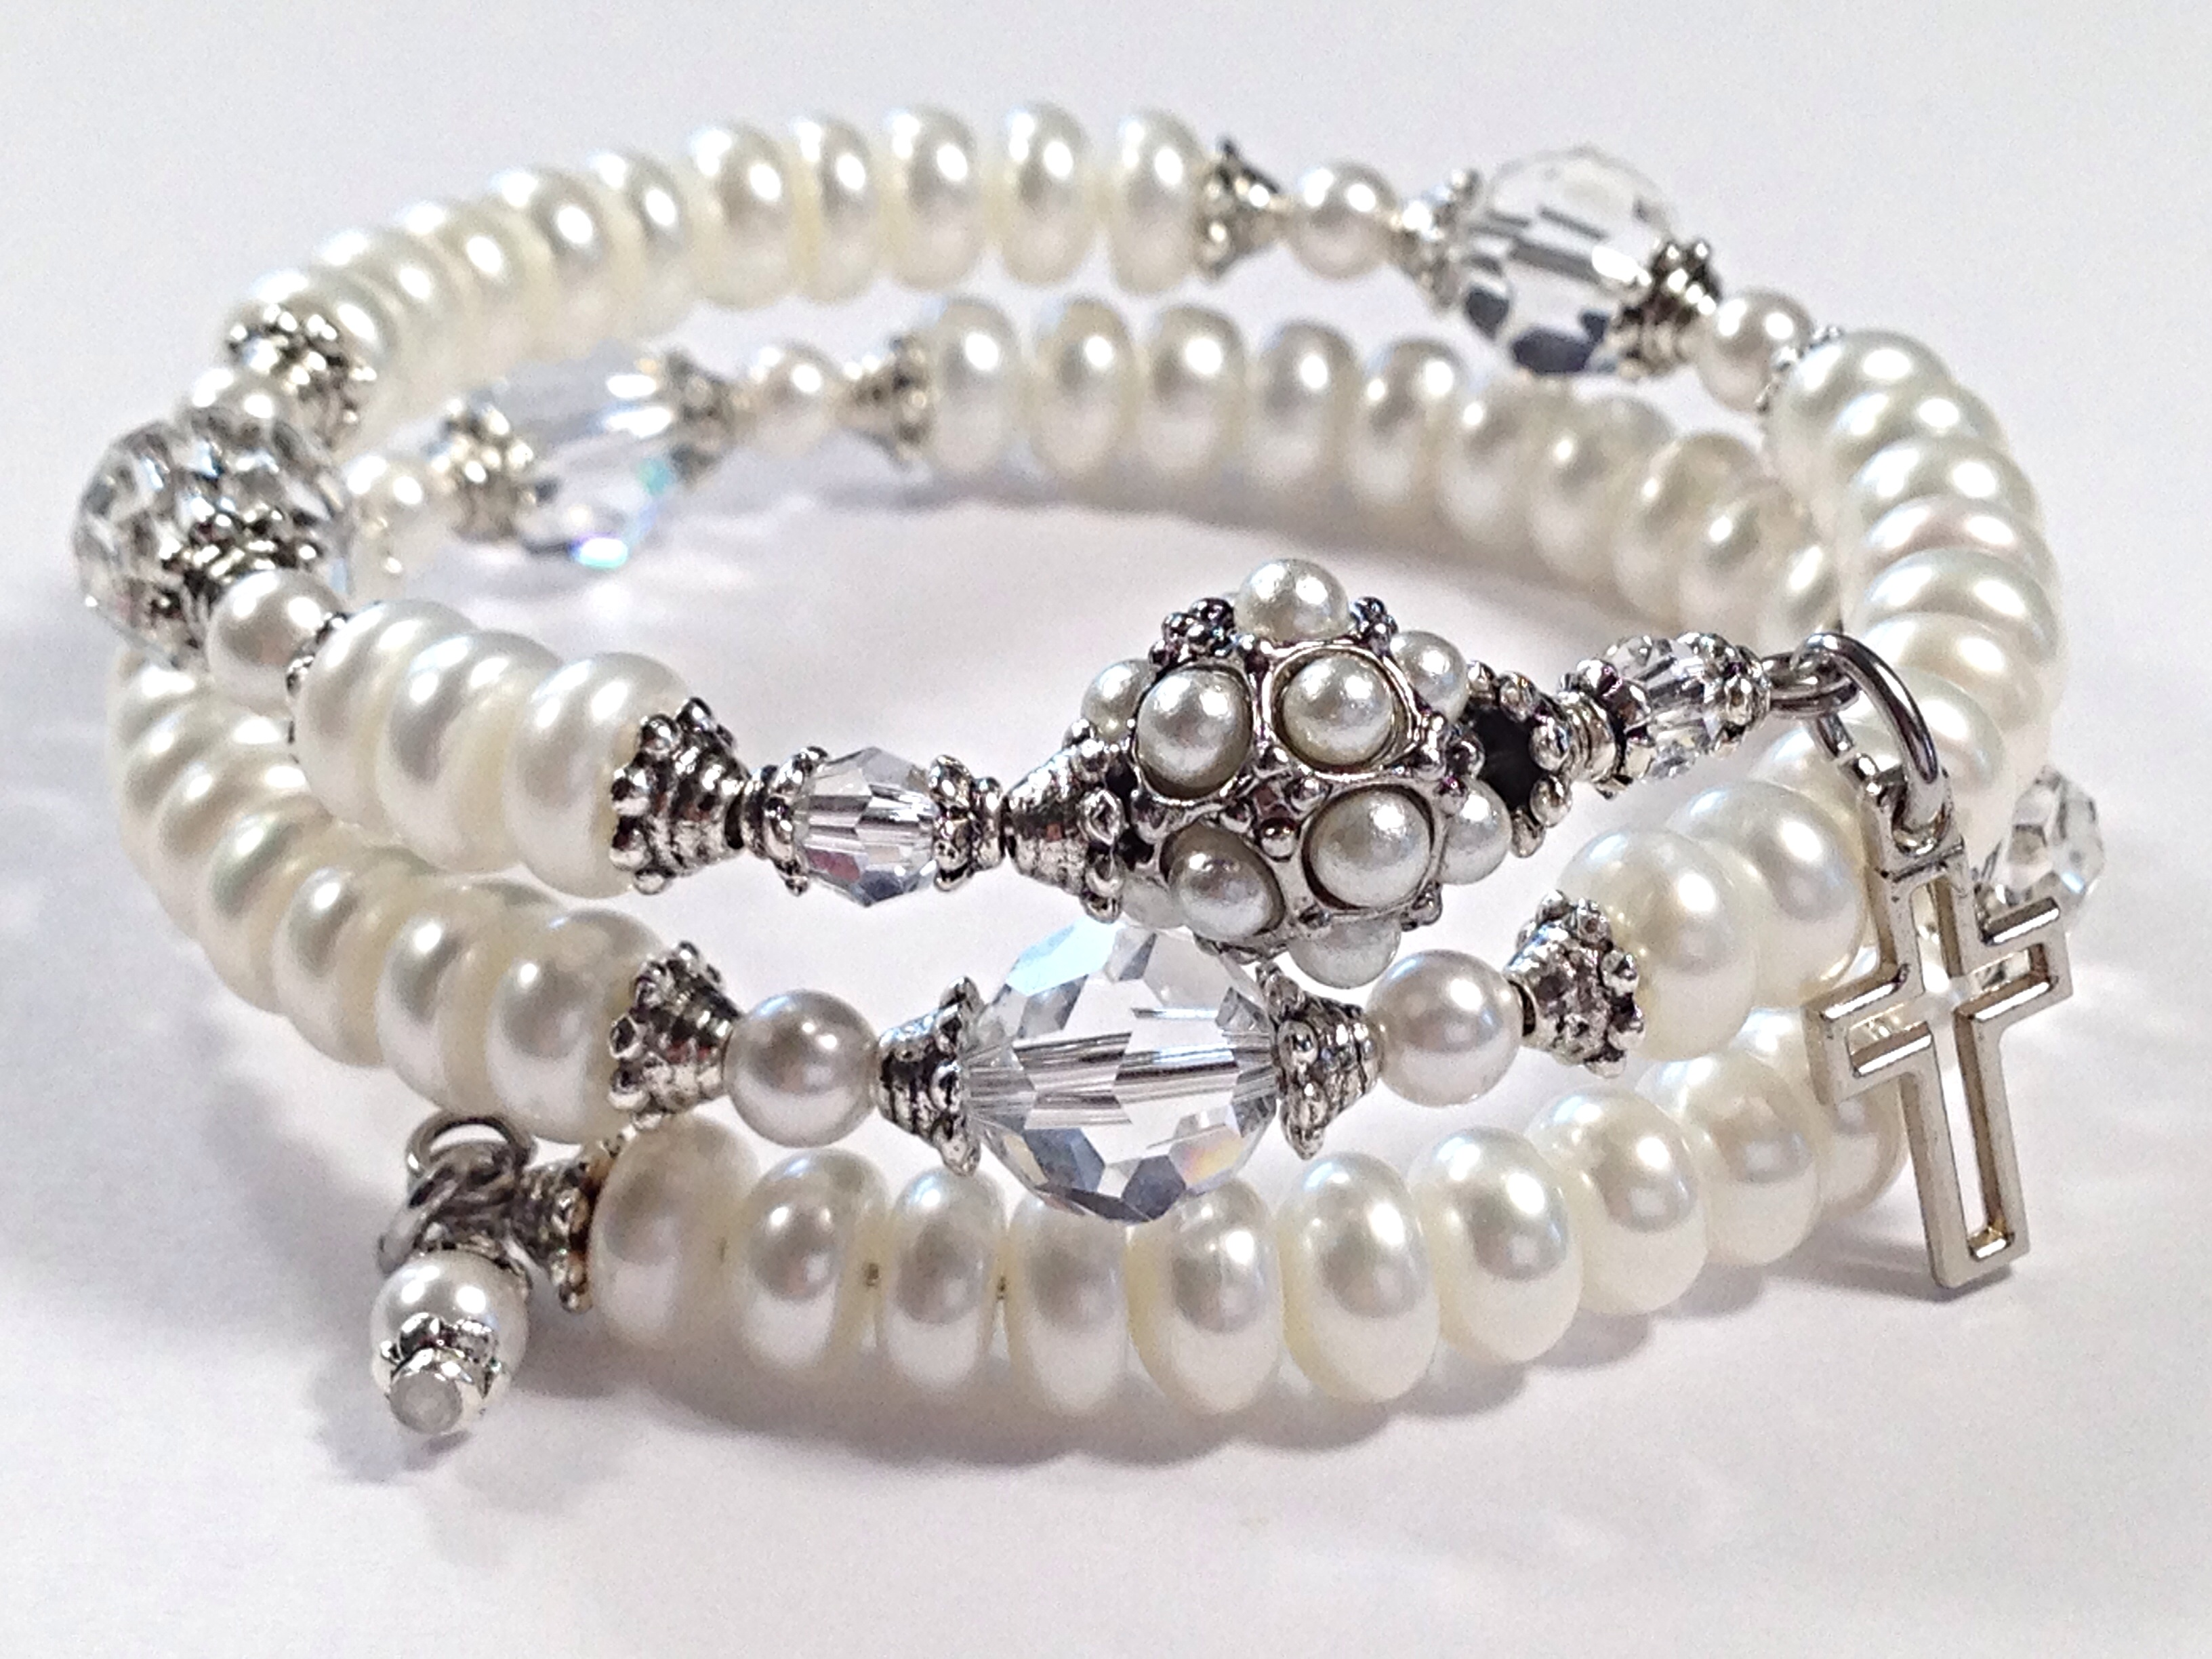 Pearl Rosary Bracelet – White Freshwater Pearls, Clear Swarovsky ...